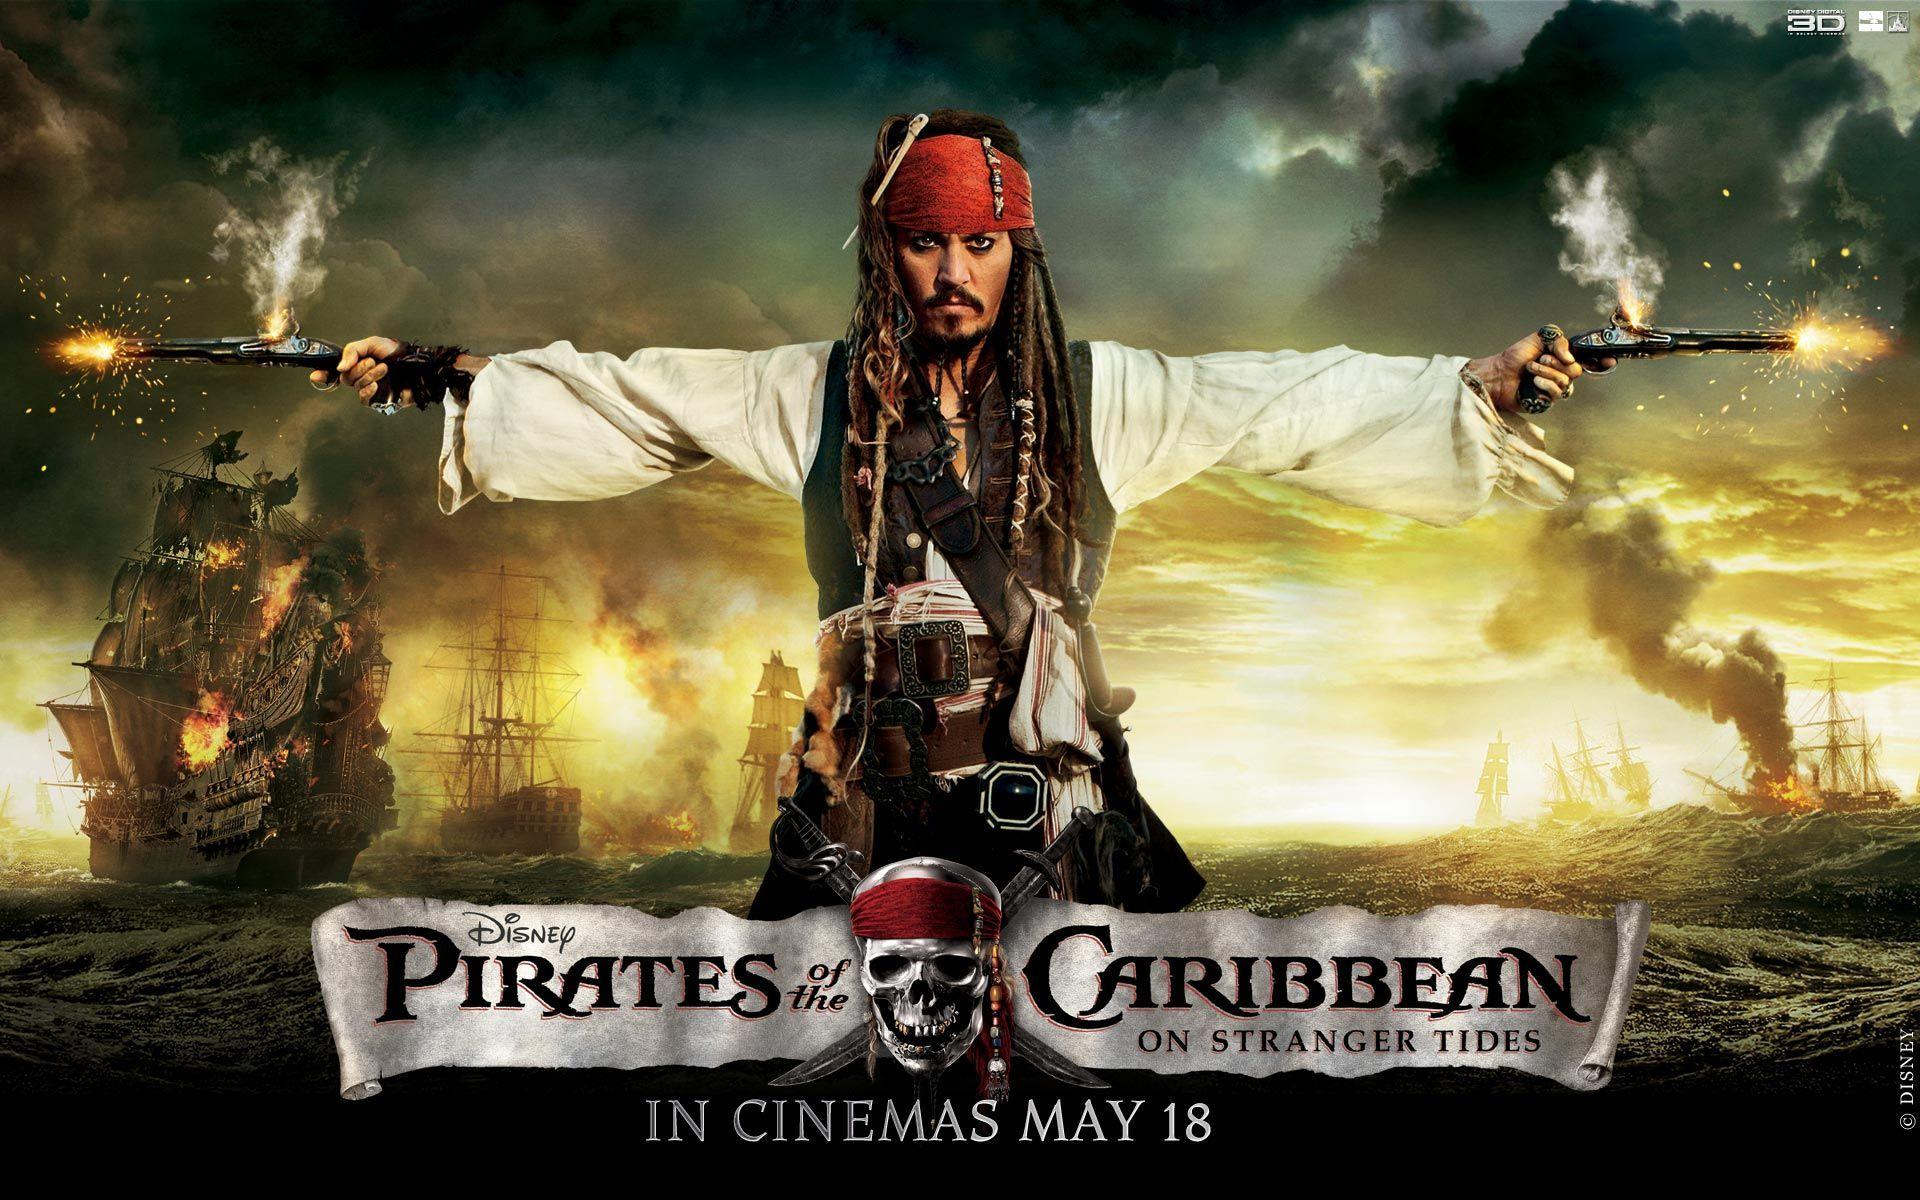 pirates of the caribbean 4 wallpapers - wallpaper cave